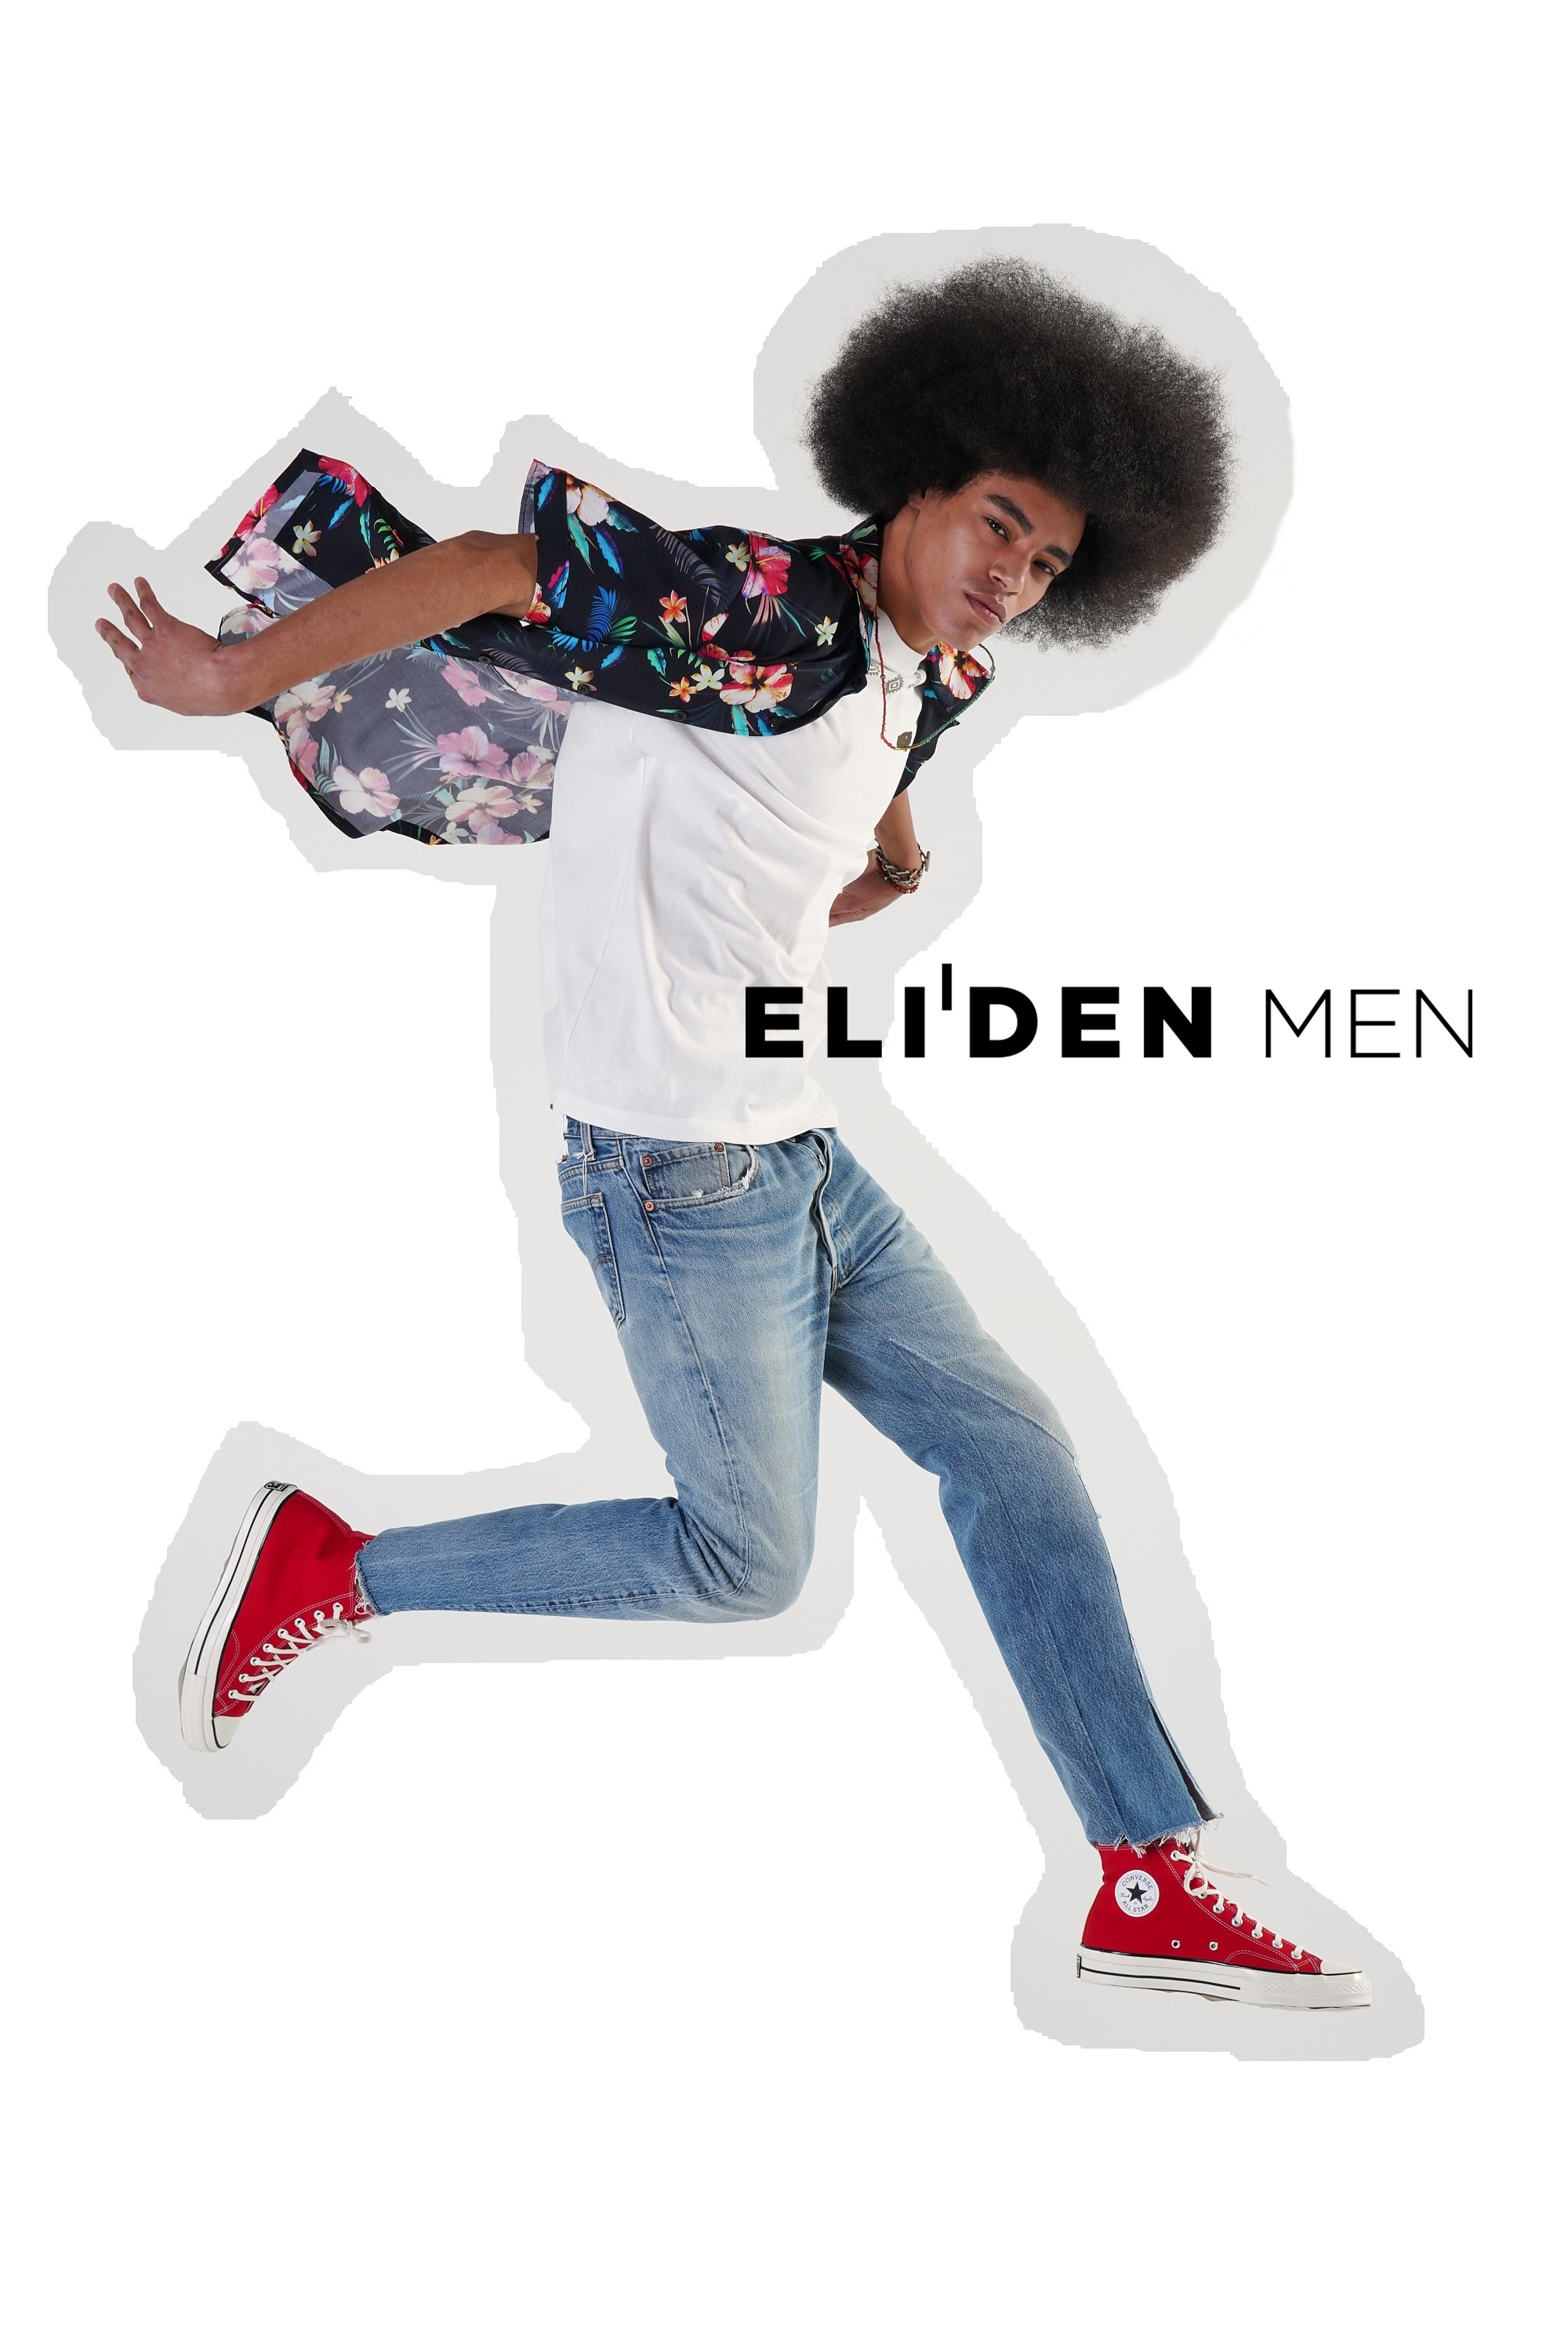 ELIDENMEN 20 S/S LOOKBOOK 3